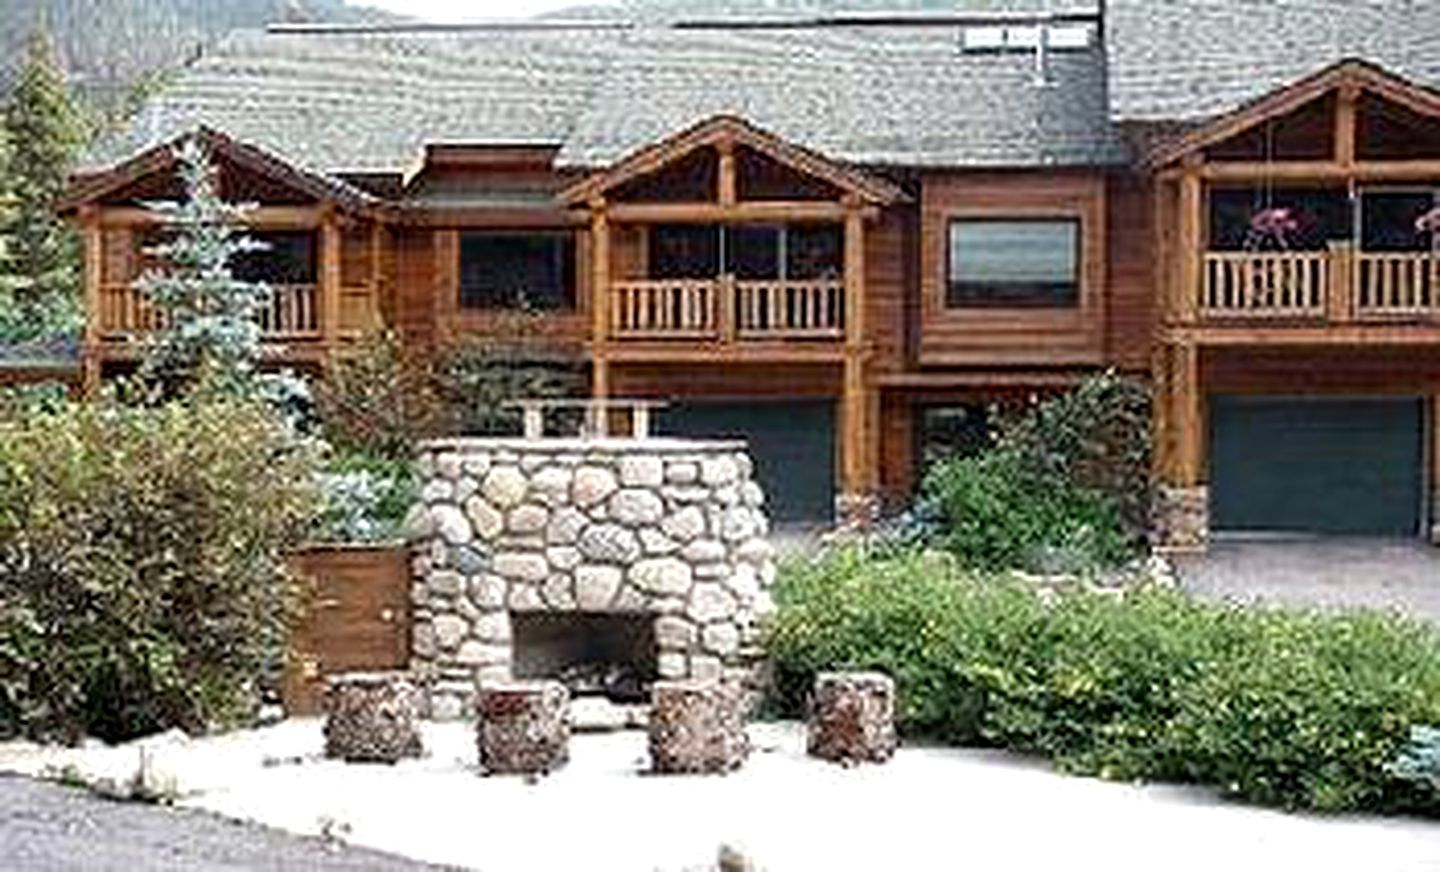 Cabañas de madera (Winter Park  , Colorado, Estados Unidos)